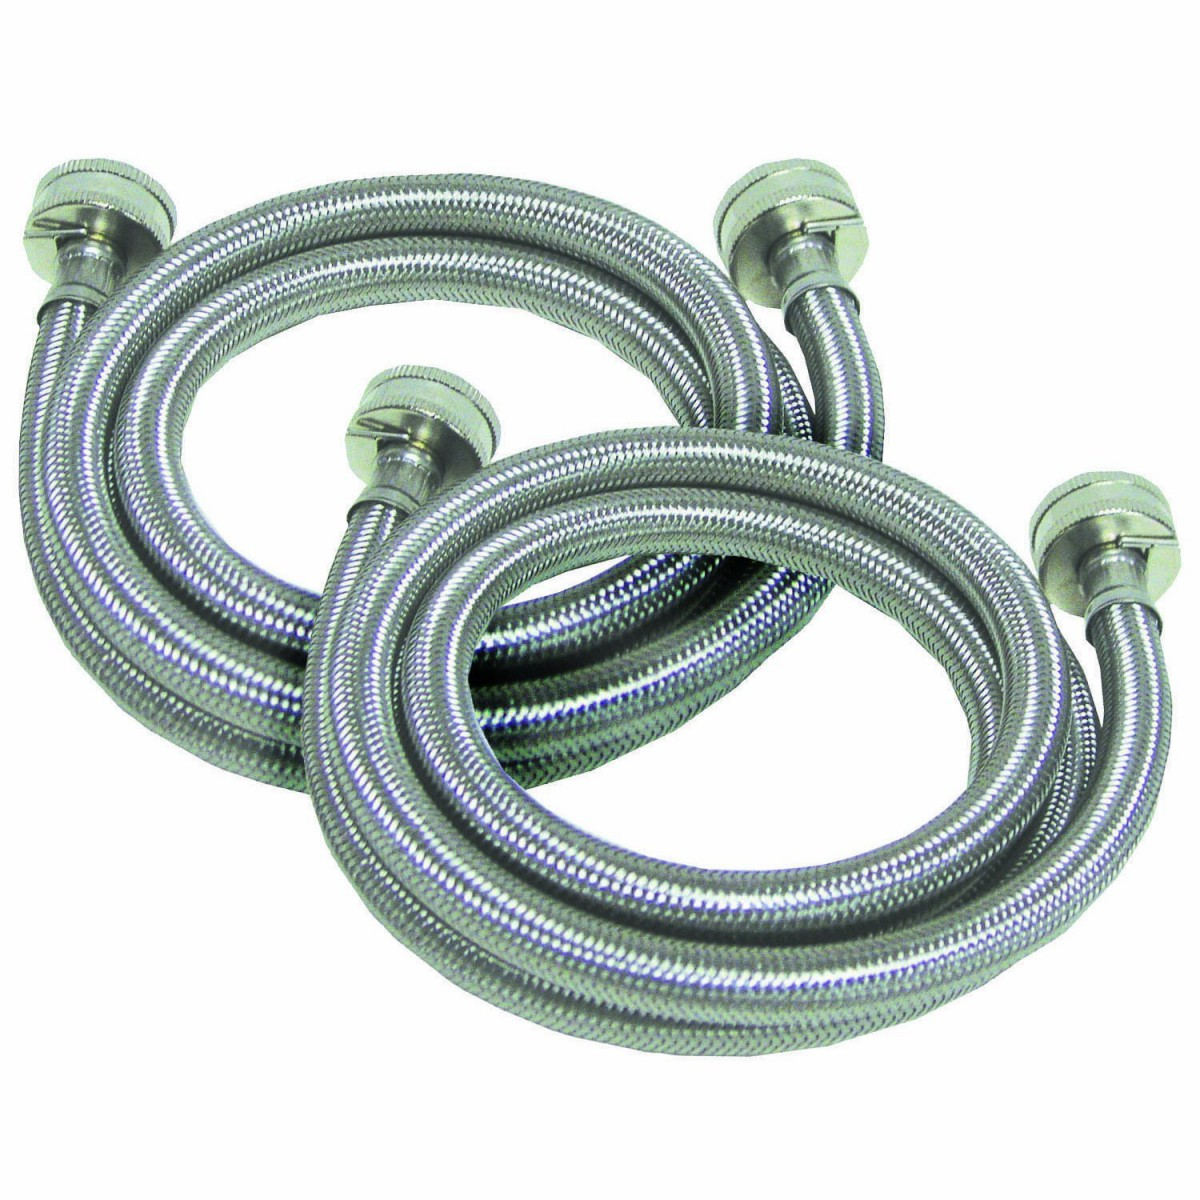 braided stainless steel 4 foot 3 4 inch washer hoses by tier1 2 pack. Black Bedroom Furniture Sets. Home Design Ideas